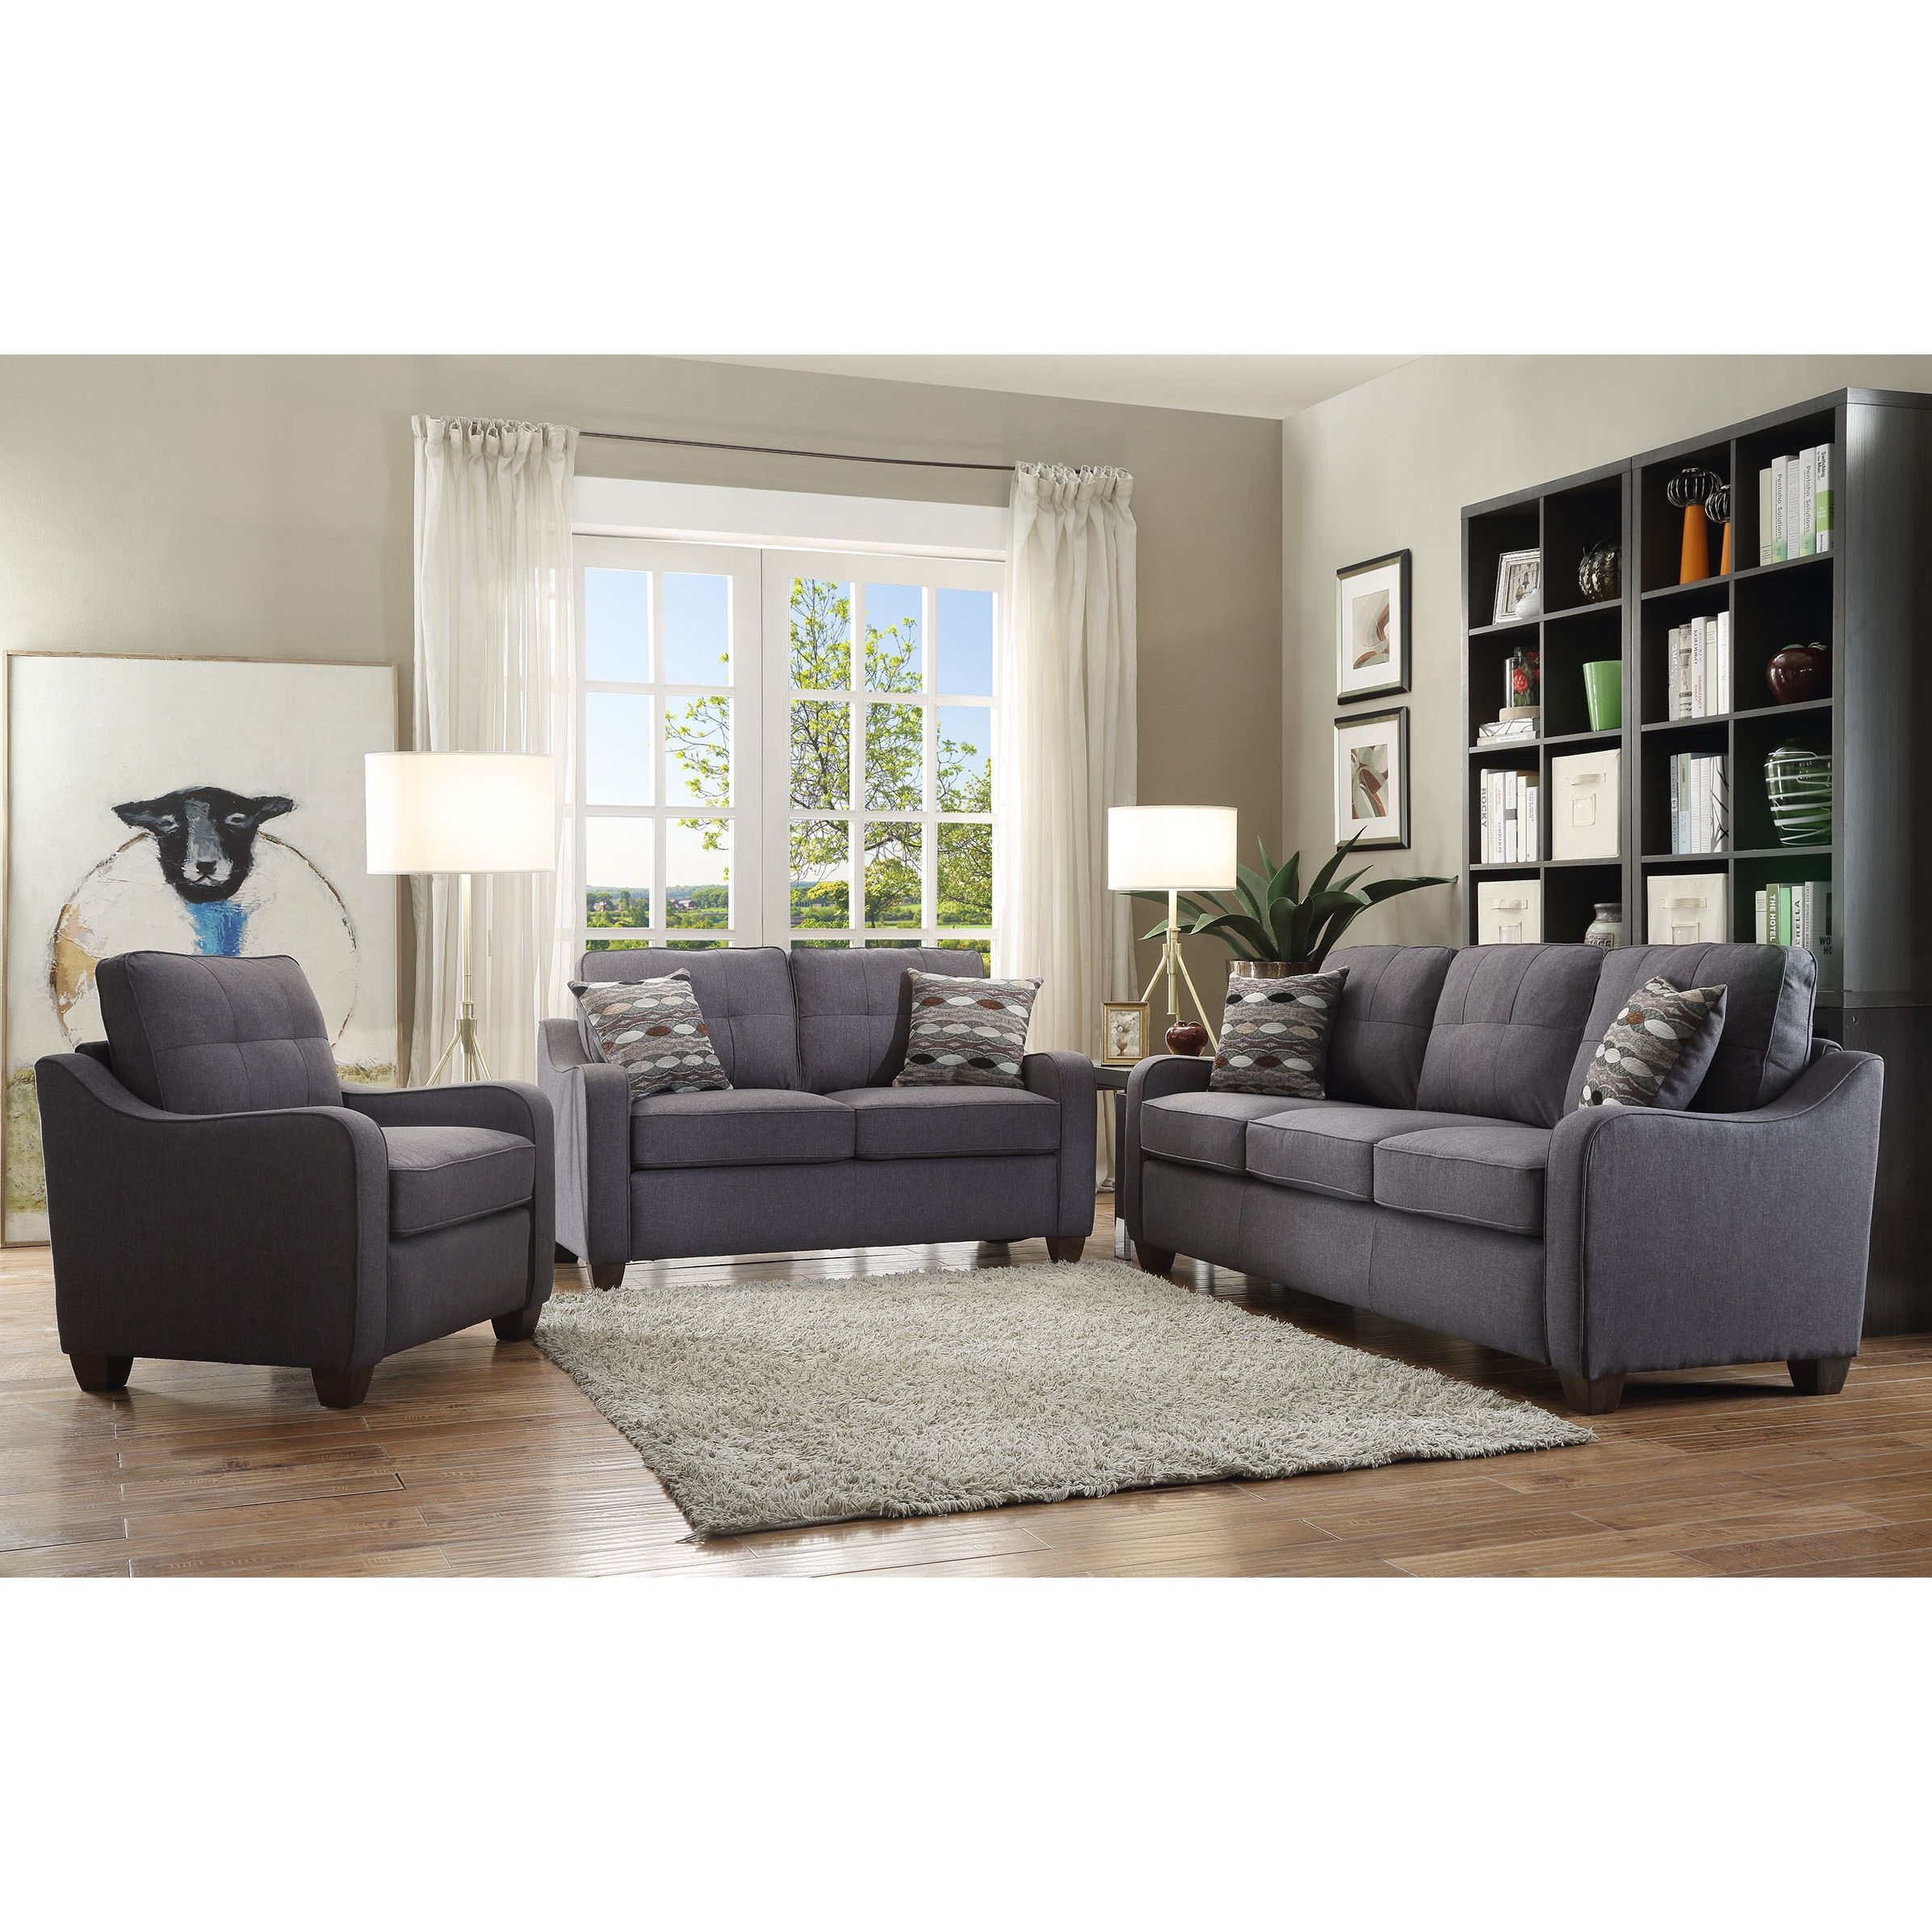 Acme Furniture Cleavon II Grey Linen Sofa With Throw Pillows |  Overstock.com Shopping